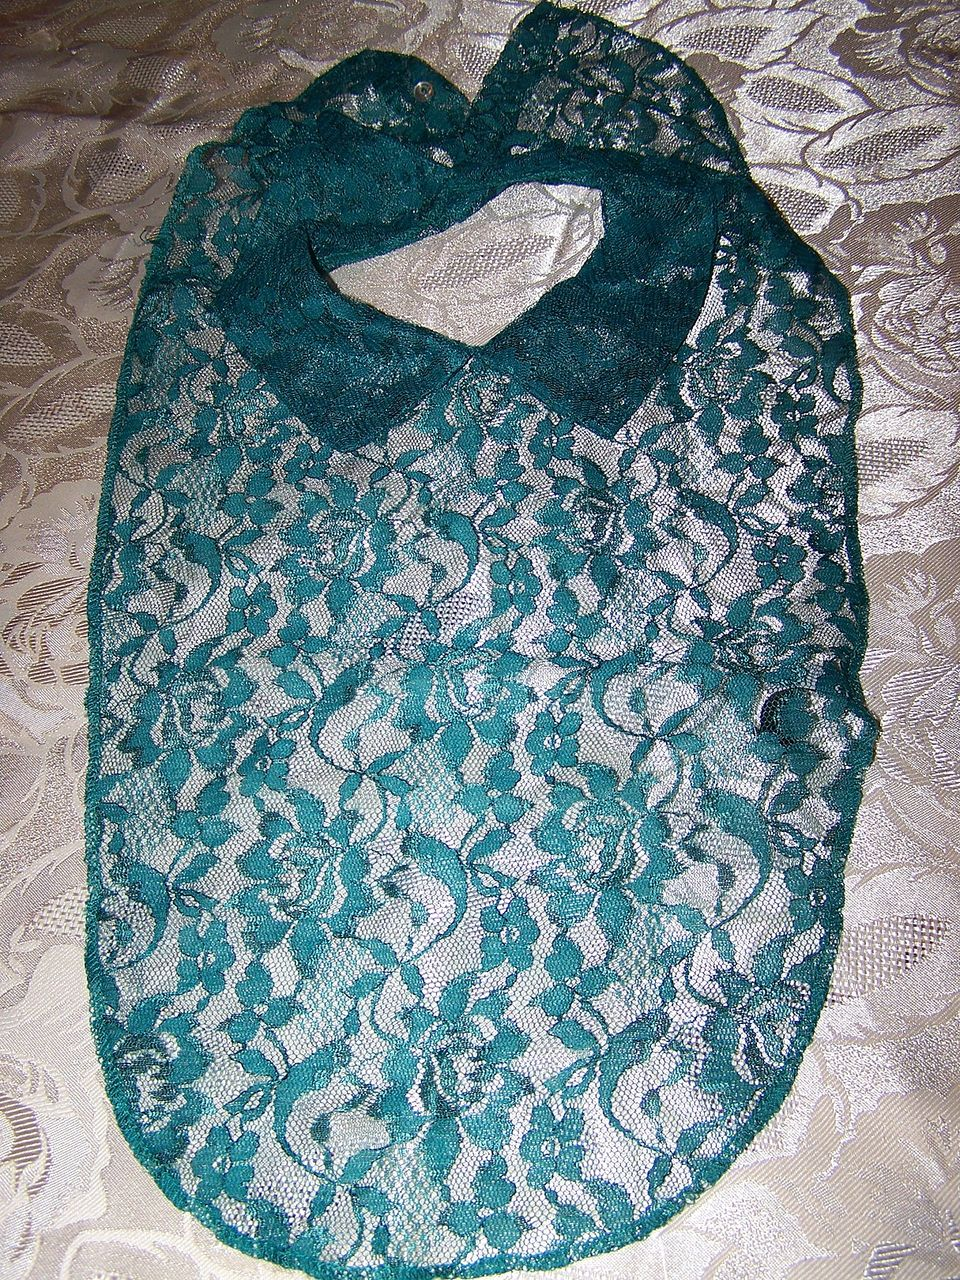 Pretty Vintage Teal Lace Dickie A. Brod